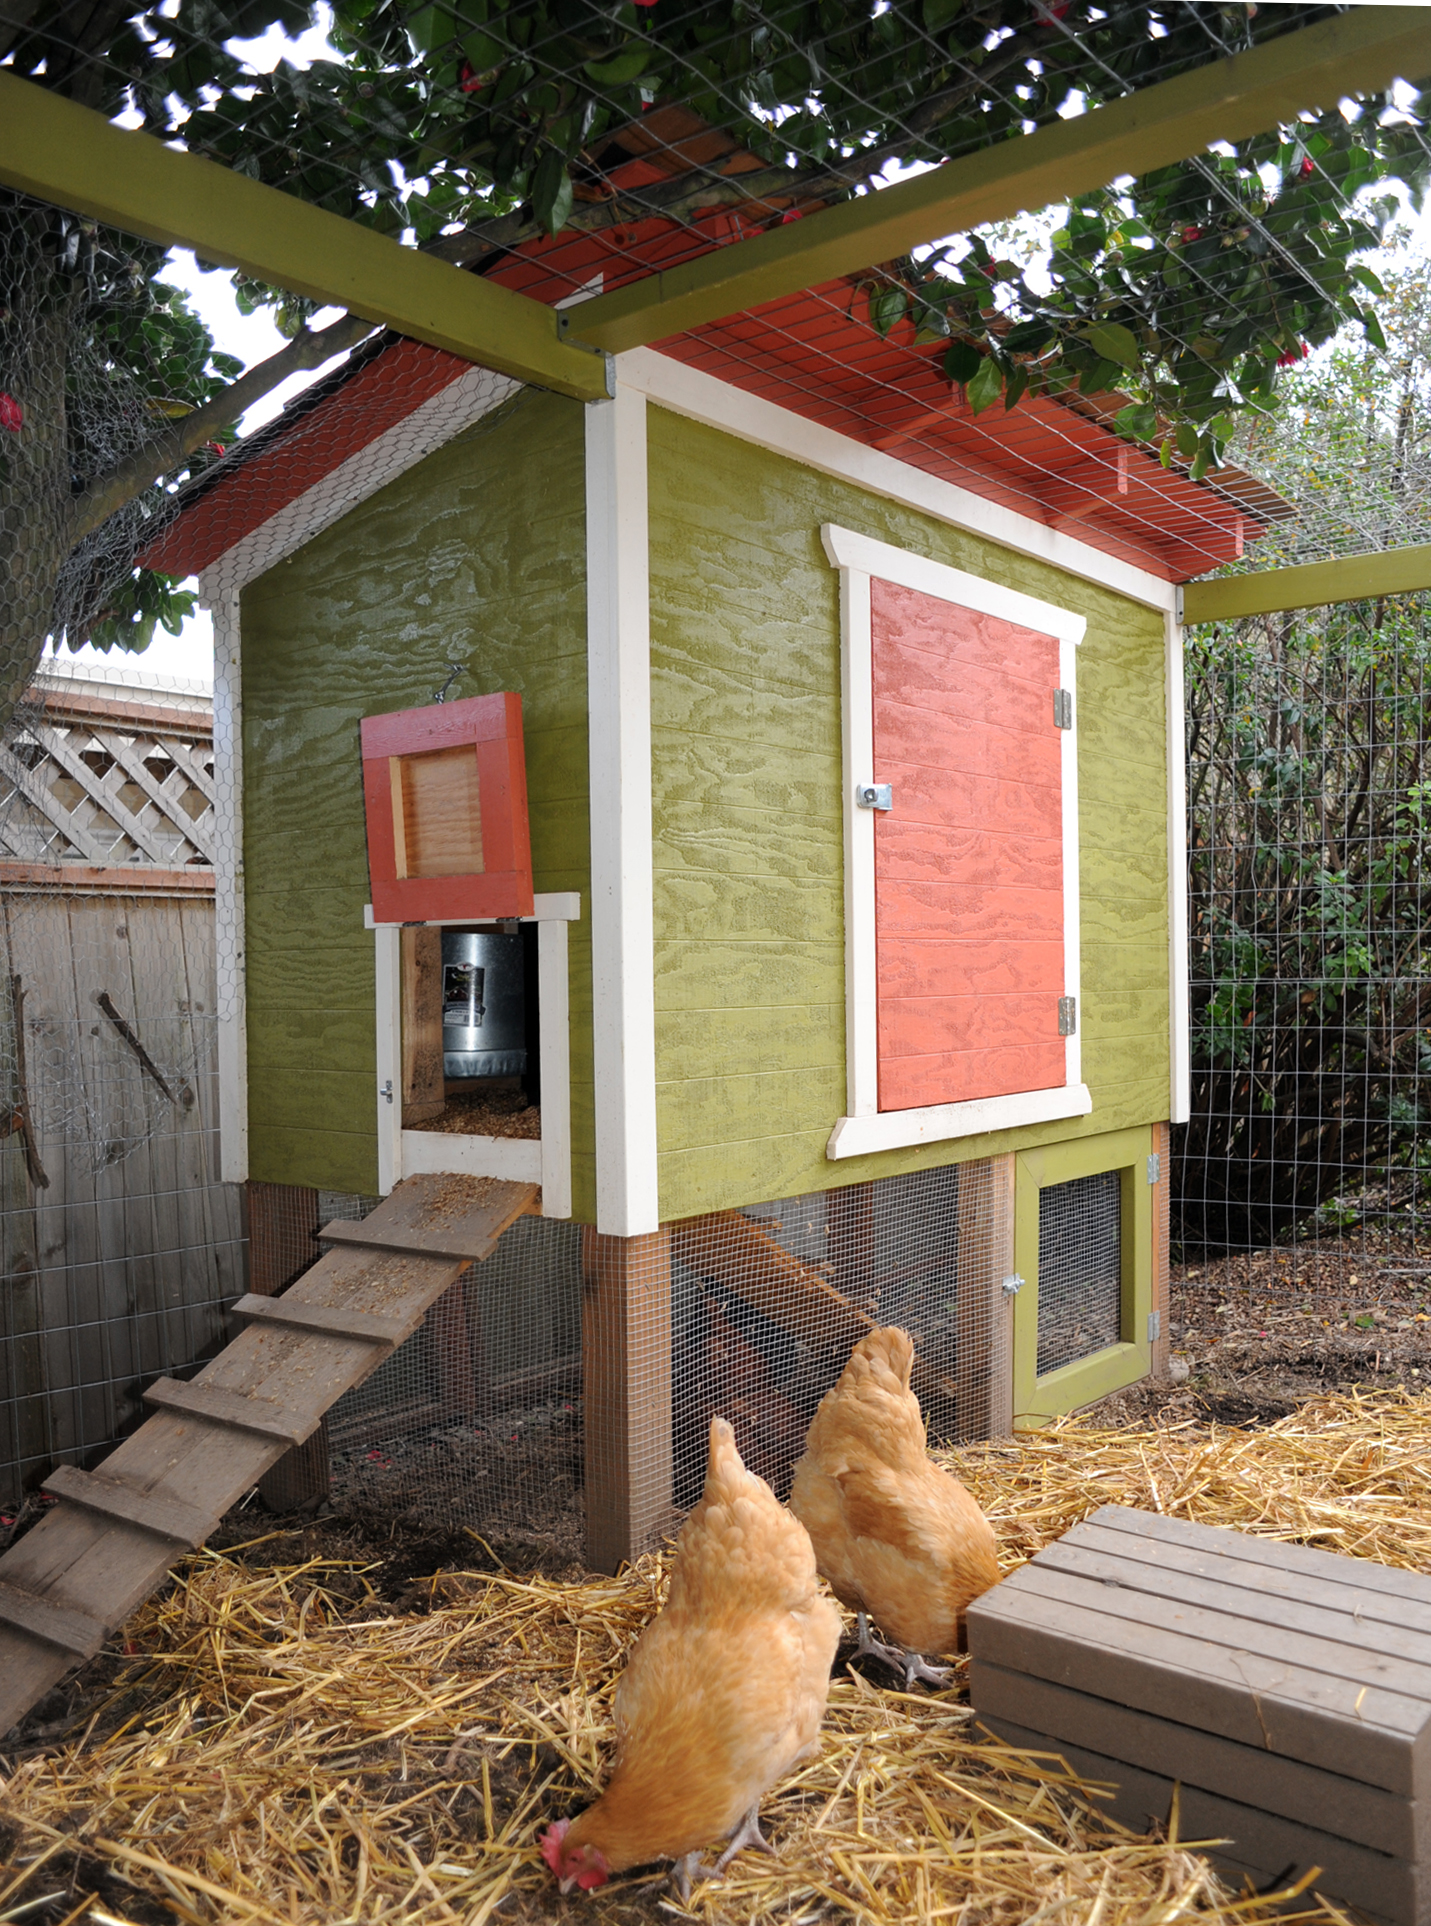 file seattle chicken coop and 2